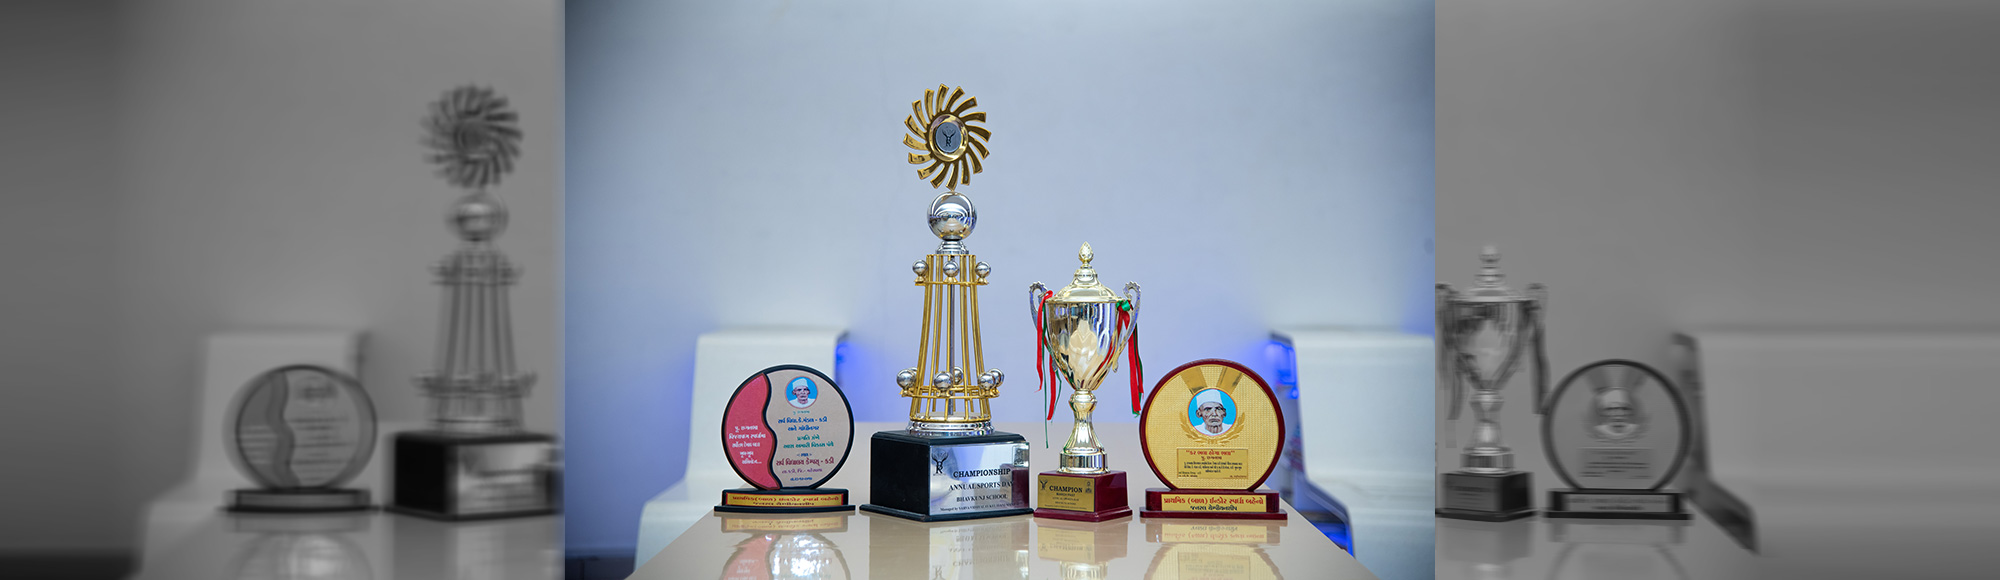 awards Bhavkunj_School_Kadi_Mehsana